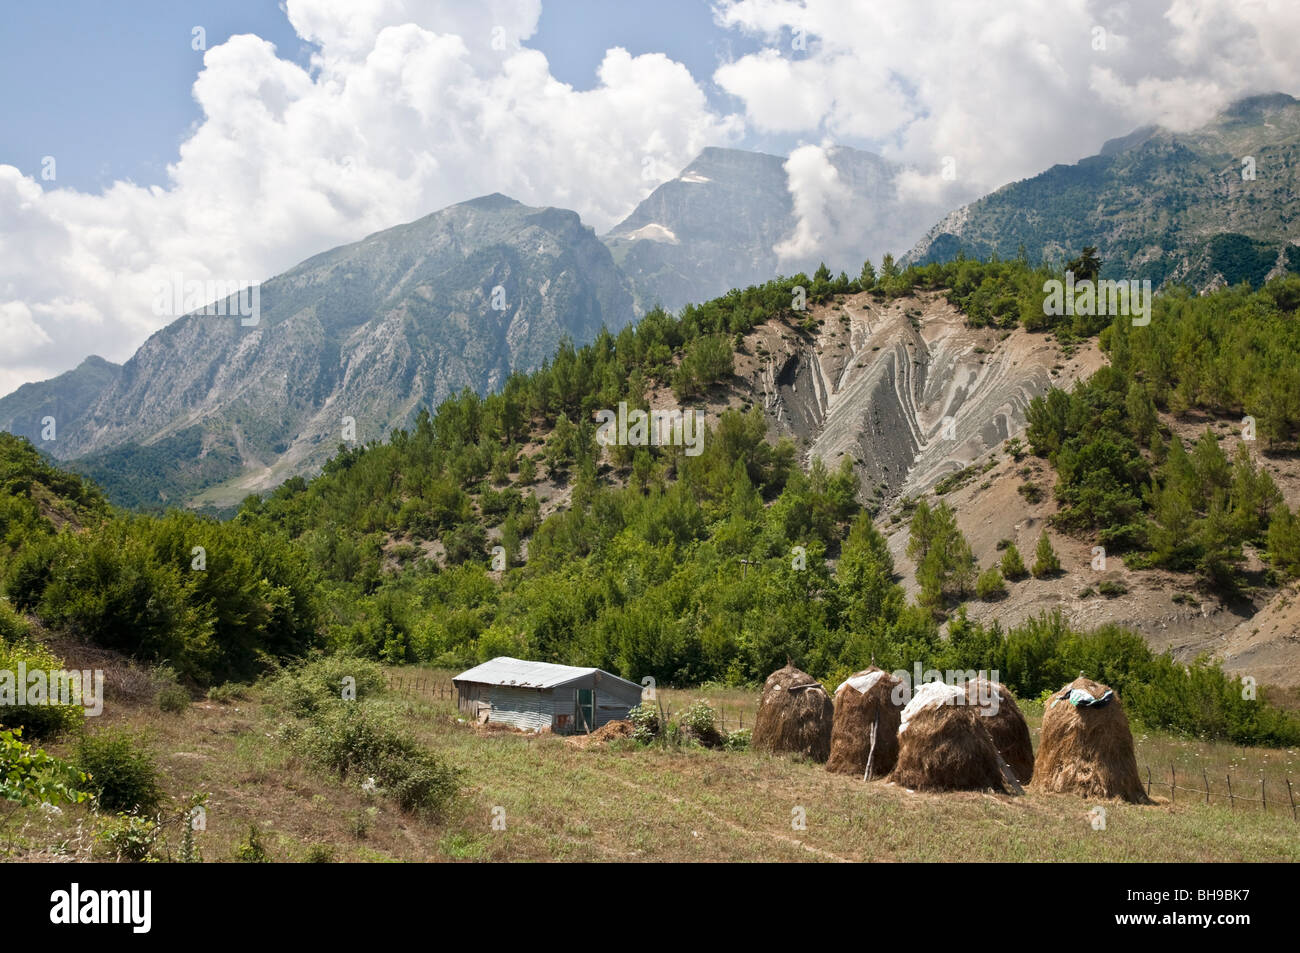 Haystacks in the Vjoses valley with the Nemercke mountains in the background, near Permet in southern Albania - Stock Image